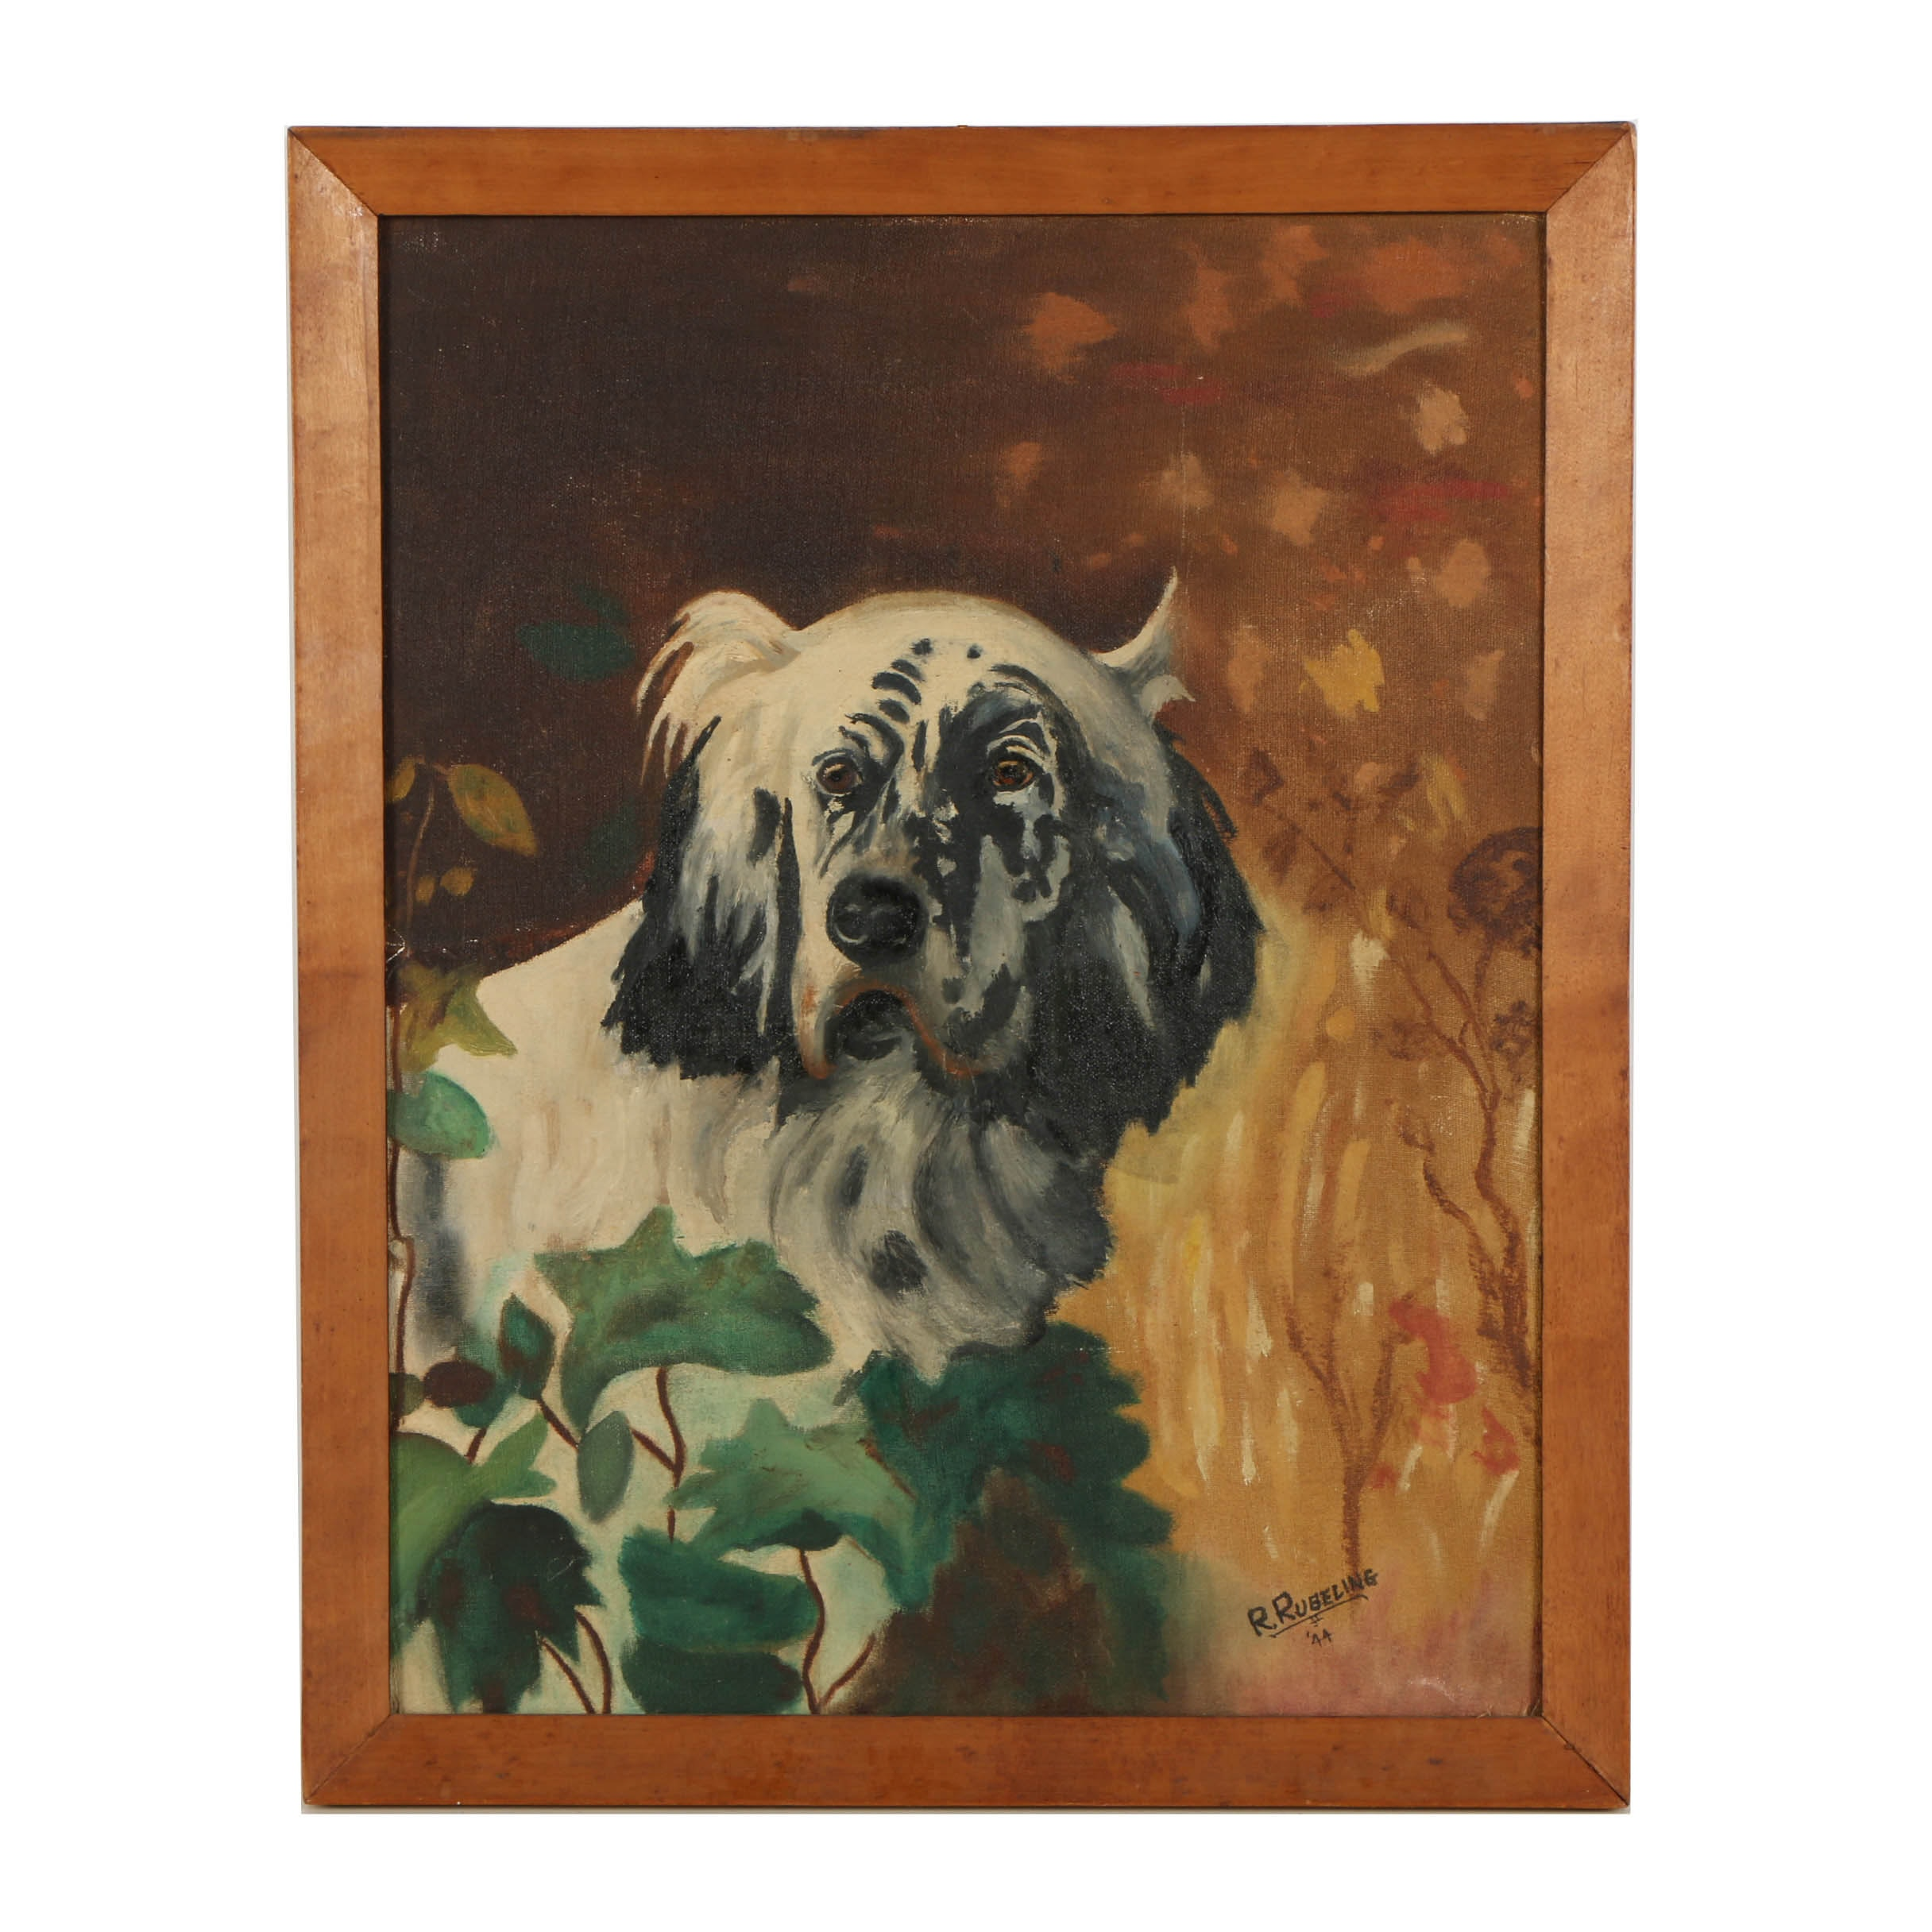 R. Rubeling 1944 Oil Painting on Wooden Panel of Dog Portrait